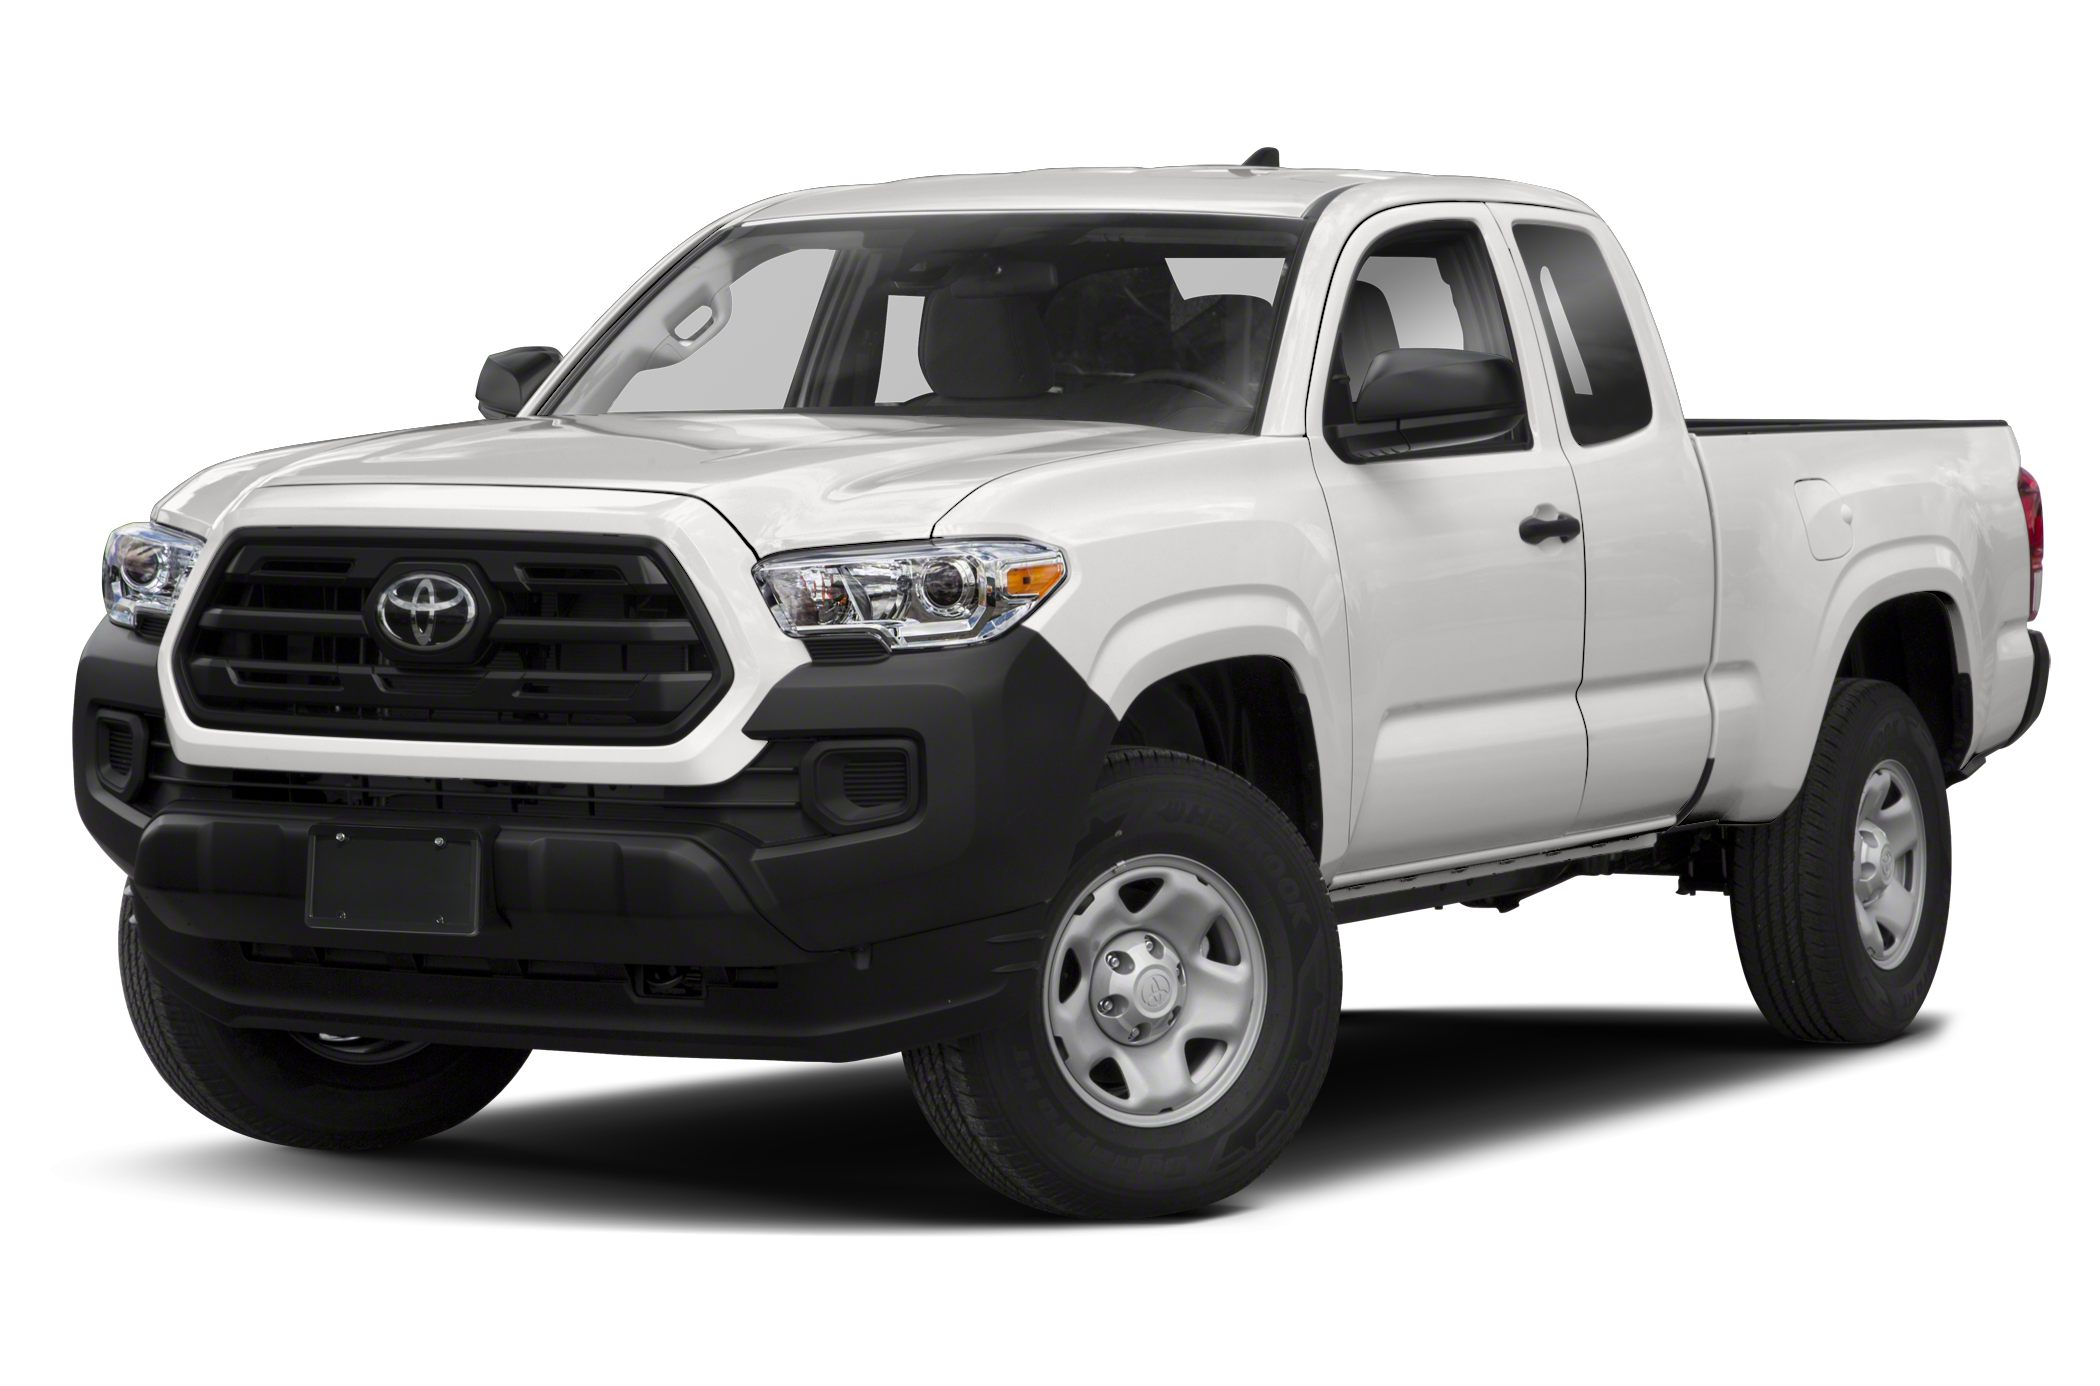 Garage Door Repair Tacoma 2019 Toyota Tacoma Sr V6 4x4 Access Cab 127 4 In Wb Pricing And Options